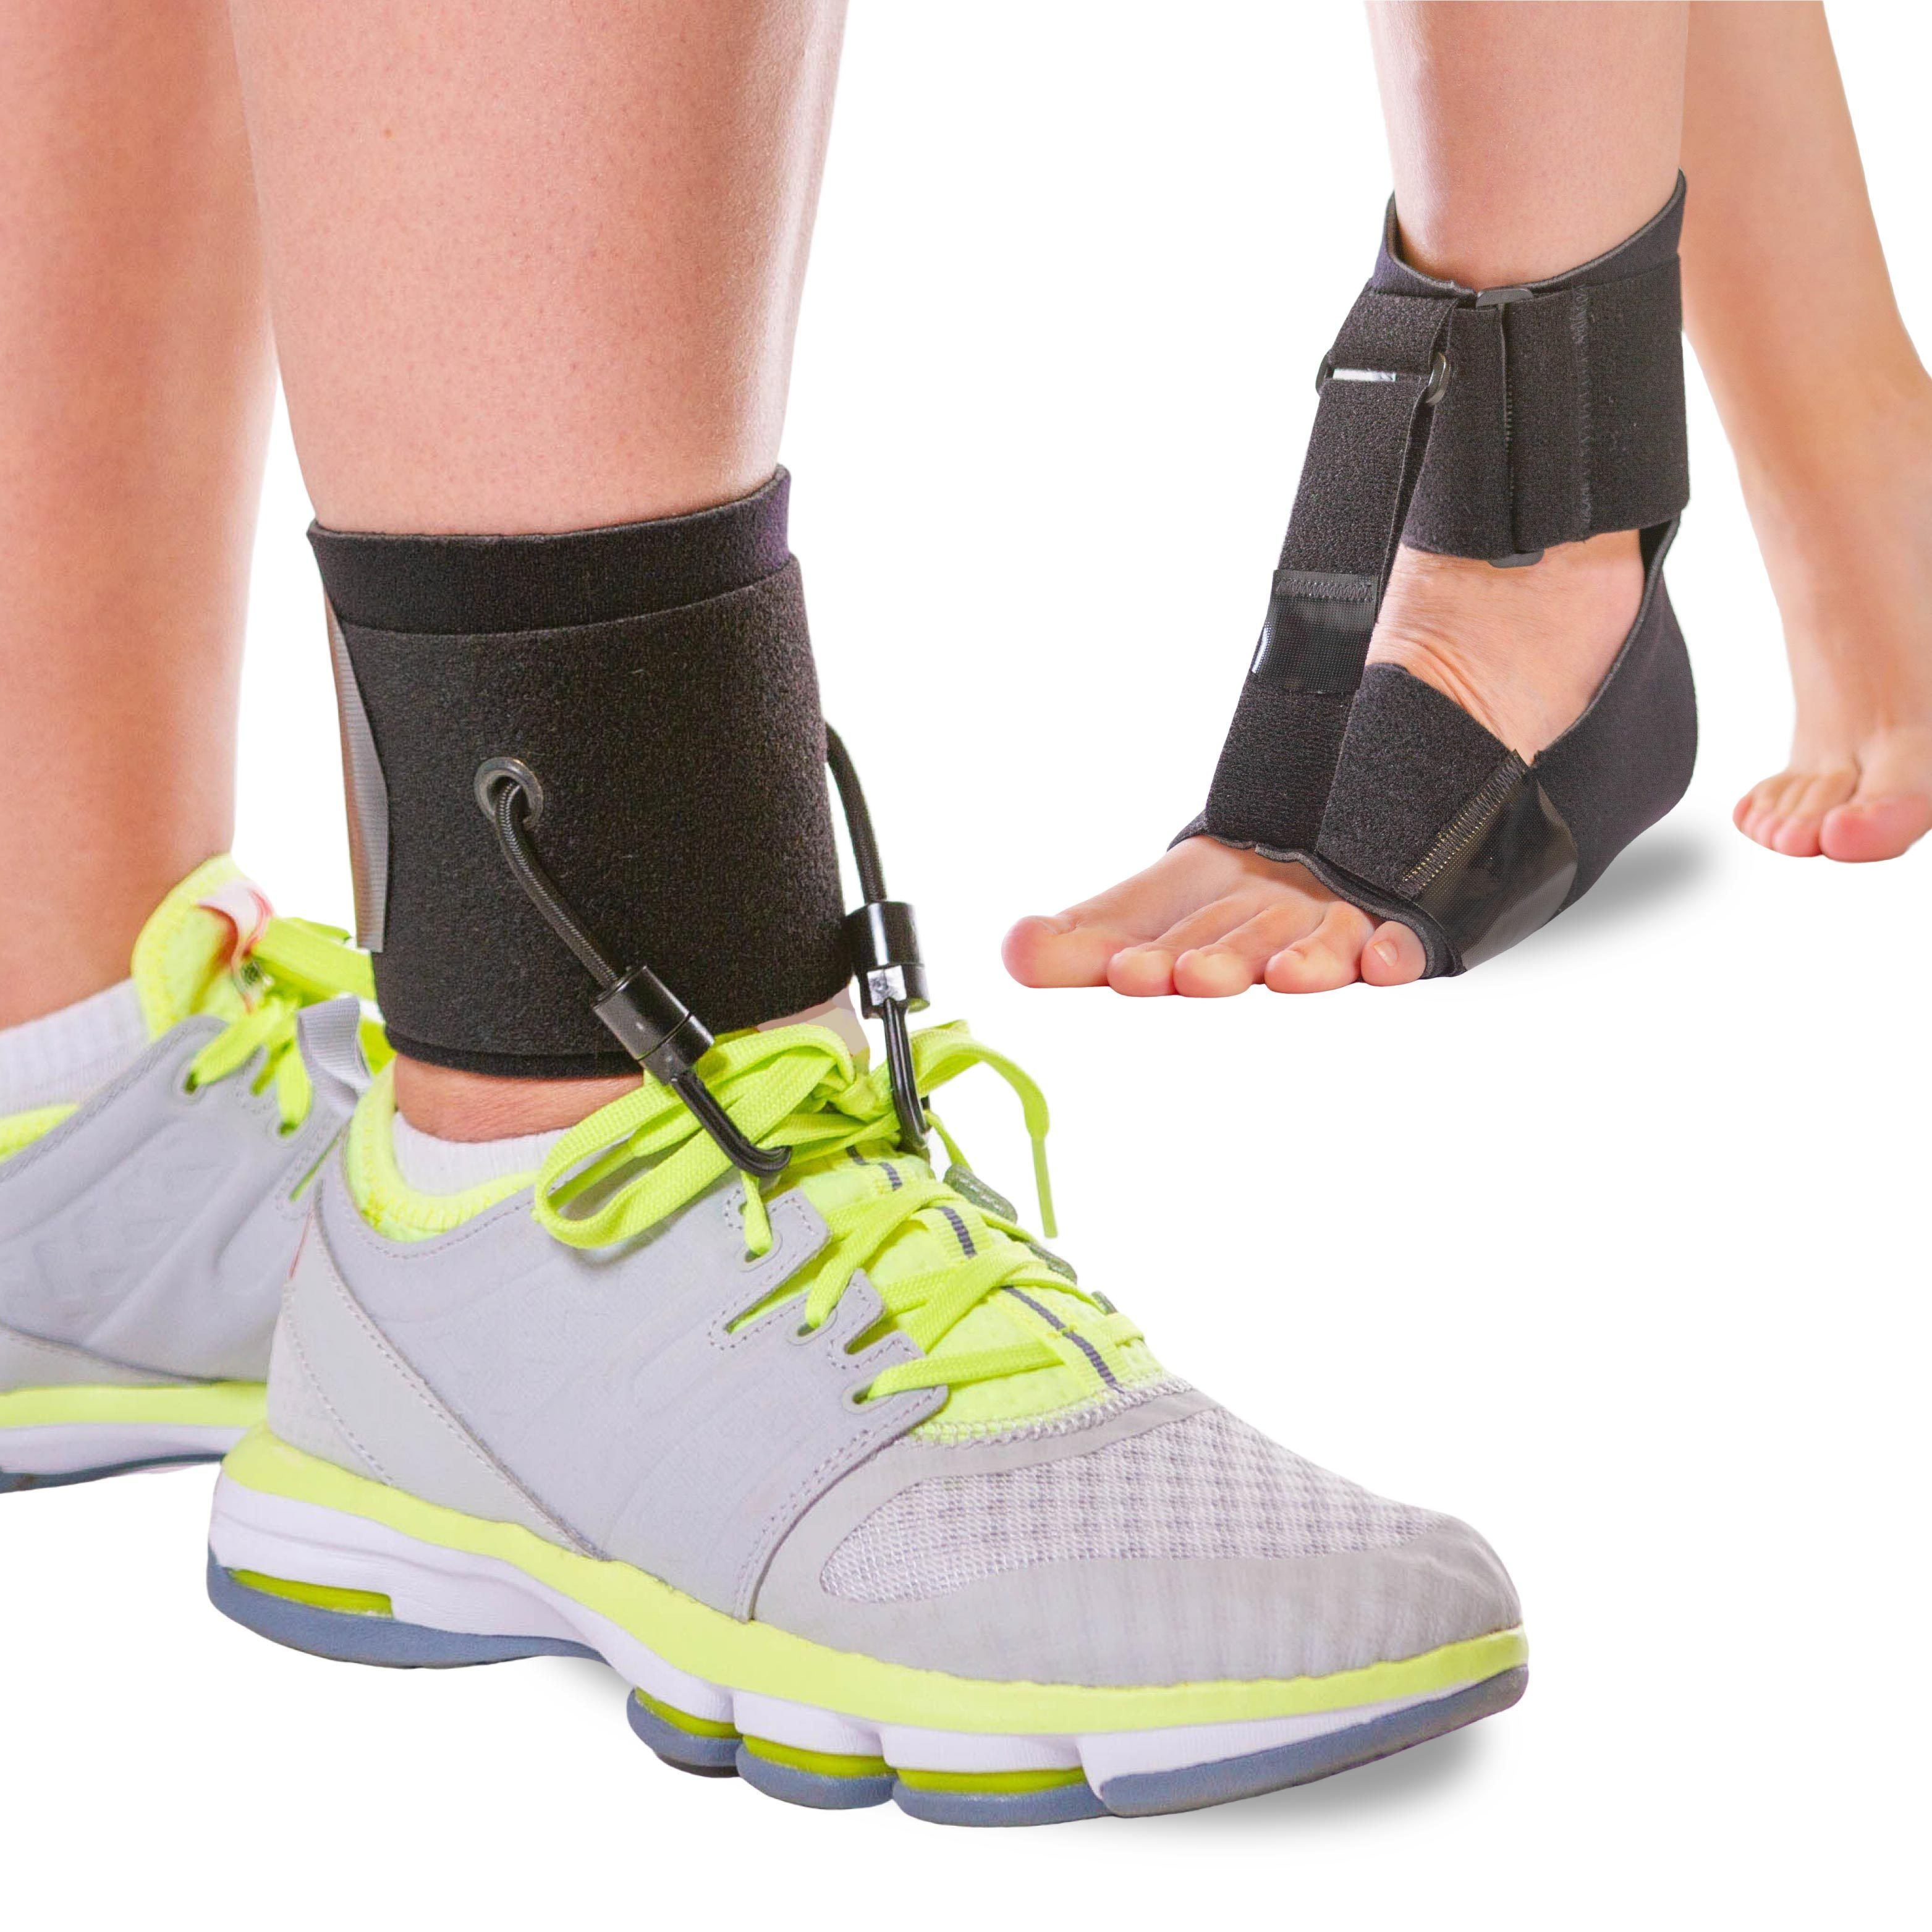 28+ Soft AFO Drop Foot Brace   Shoe or Barefoot Dorsiflexion Assist for Neuropathy or Charcot Marie Tooth Treatment   S/M